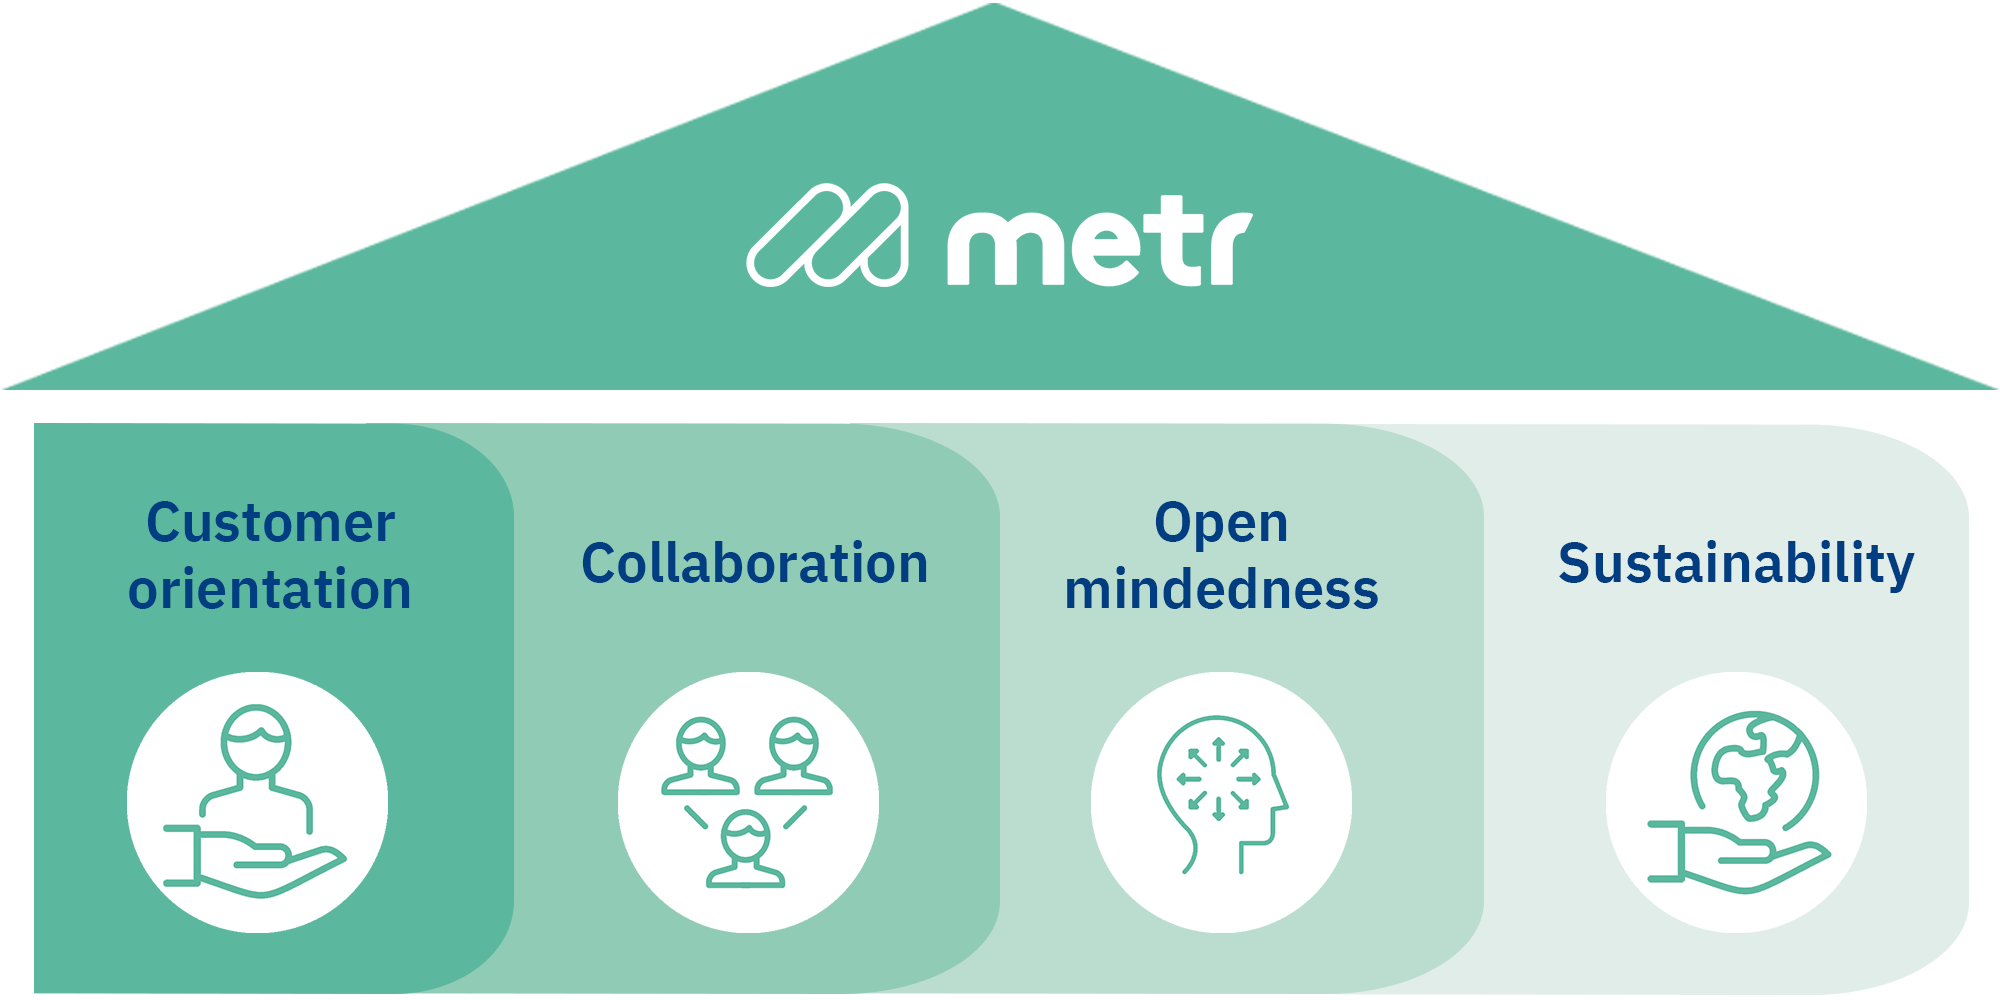 The metr values are composed of customer orientation, collaboration, open mindedness and sustainability.